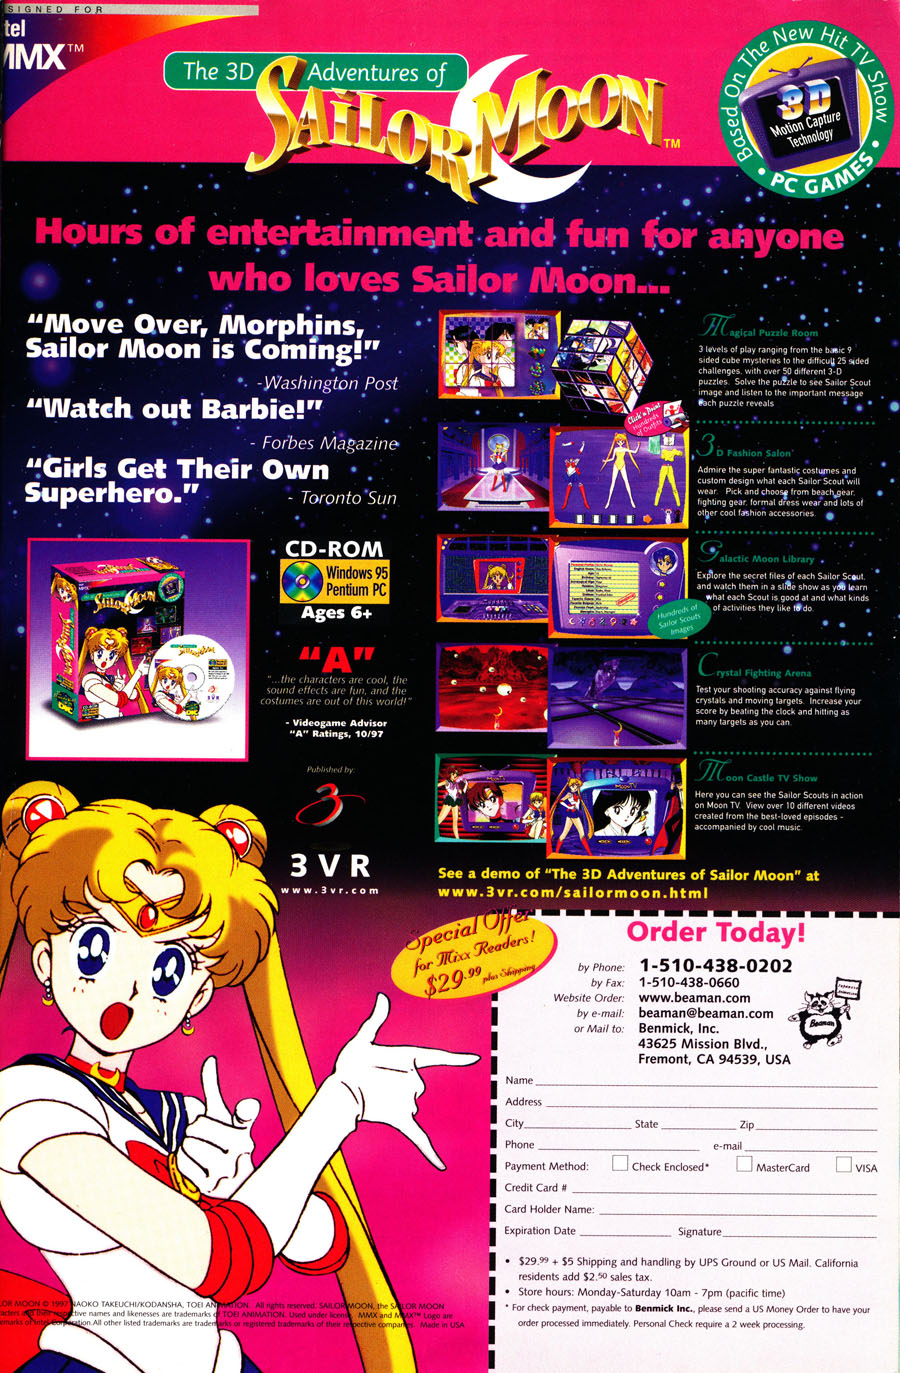 3d-adventures-of-sailor-moon-CD-rom-game